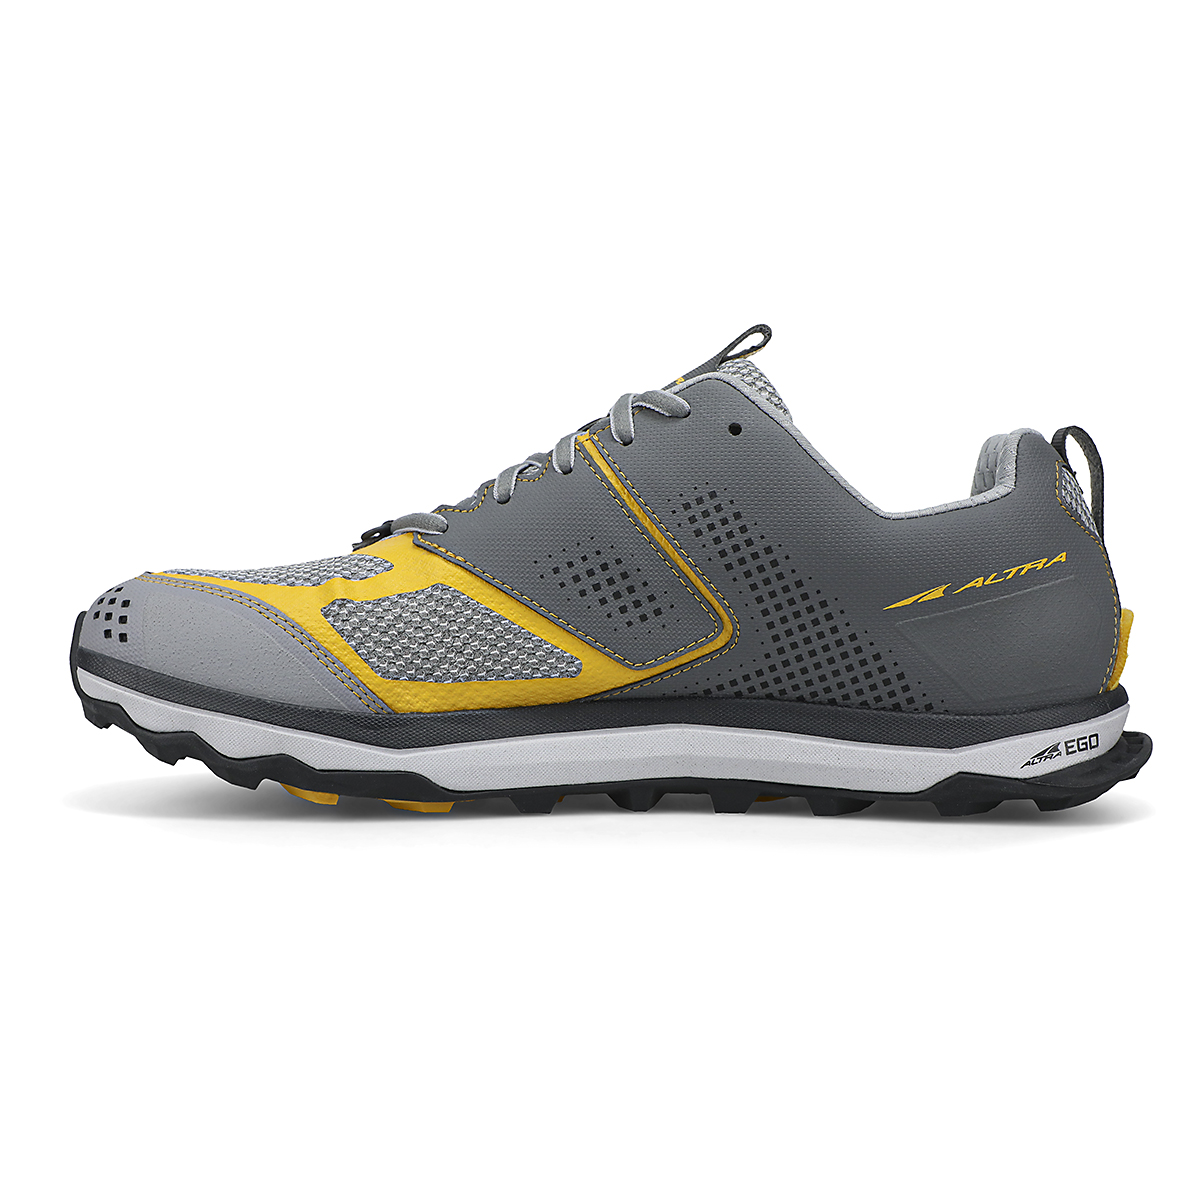 Men's Altra Lone Peak 5 10th Anniversary Special Edition Trail Running Shoe - Color: Gray/Yellow - Size: 8 - Width: Regular, Gray/Yellow, large, image 2